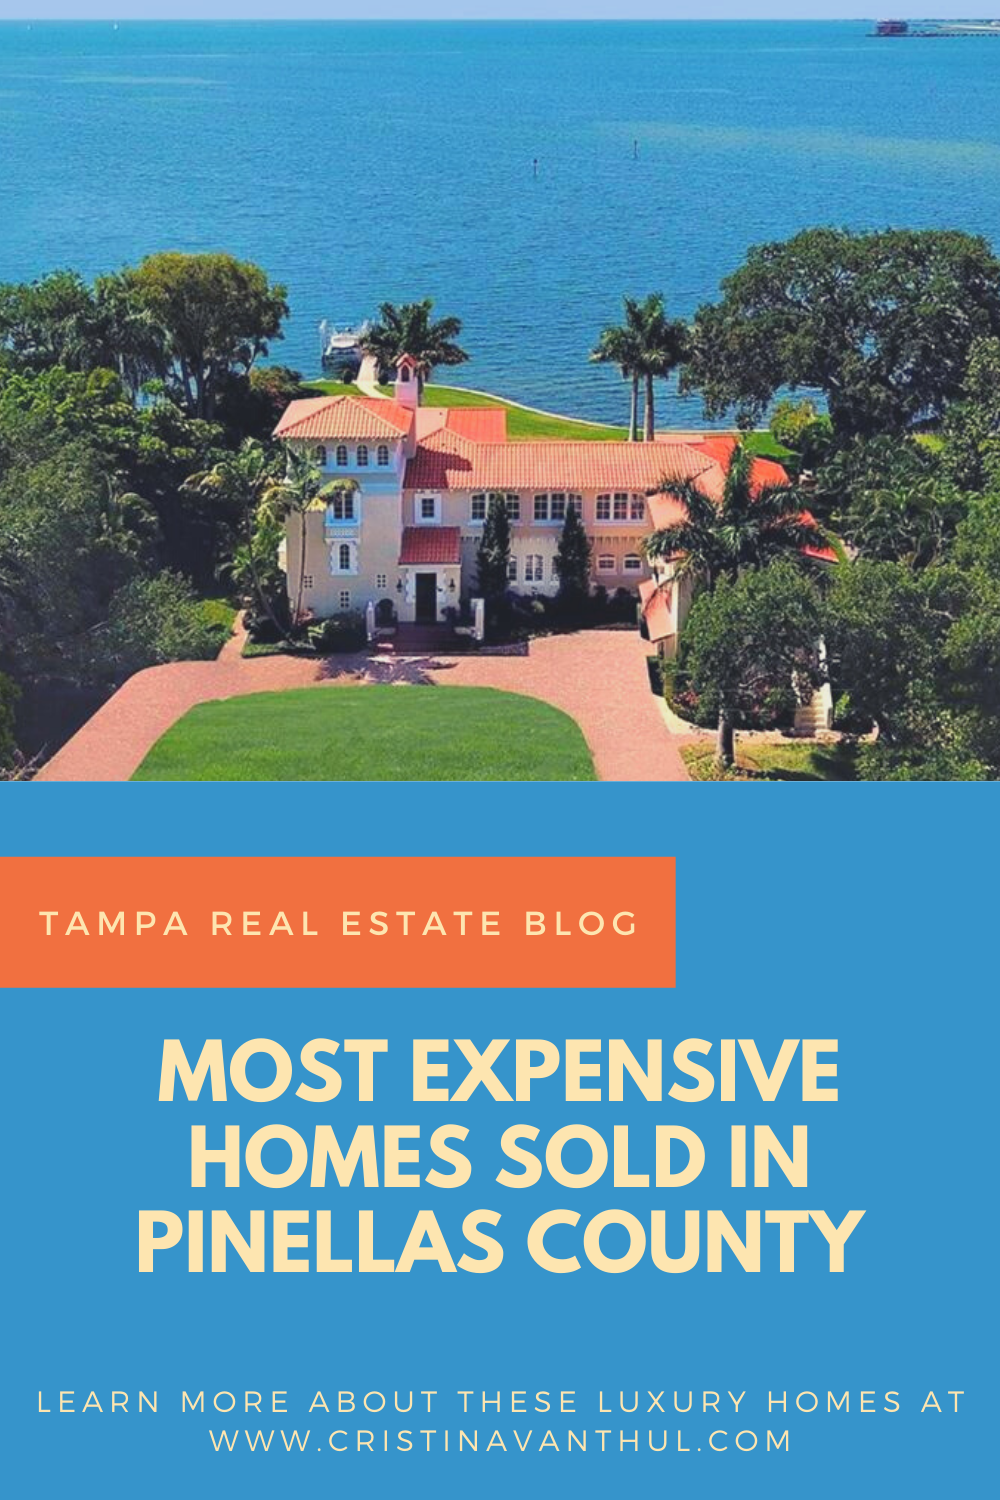 15 Most Expensive Homes Sold In Pinellas County In 2019 In 2020 Expensive Houses Luxury Homes Tampa Real Estate